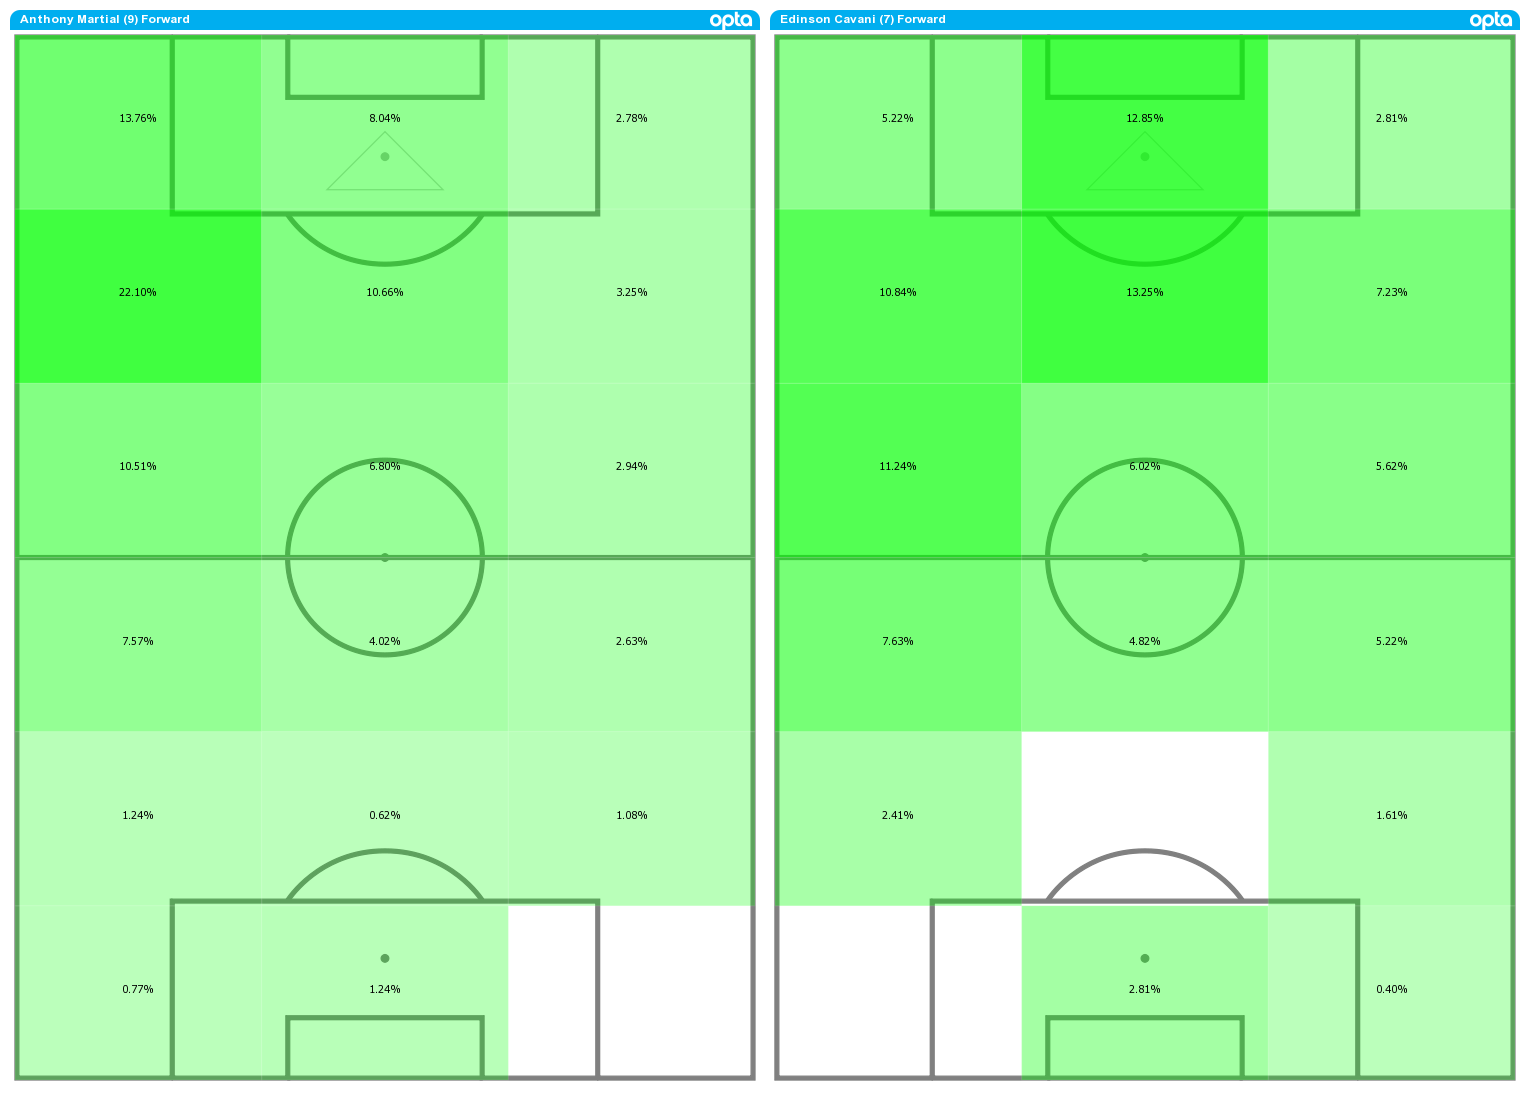 Anthony Martial (L) and Edinson Cavani (R) average position activity maps for 2020-21